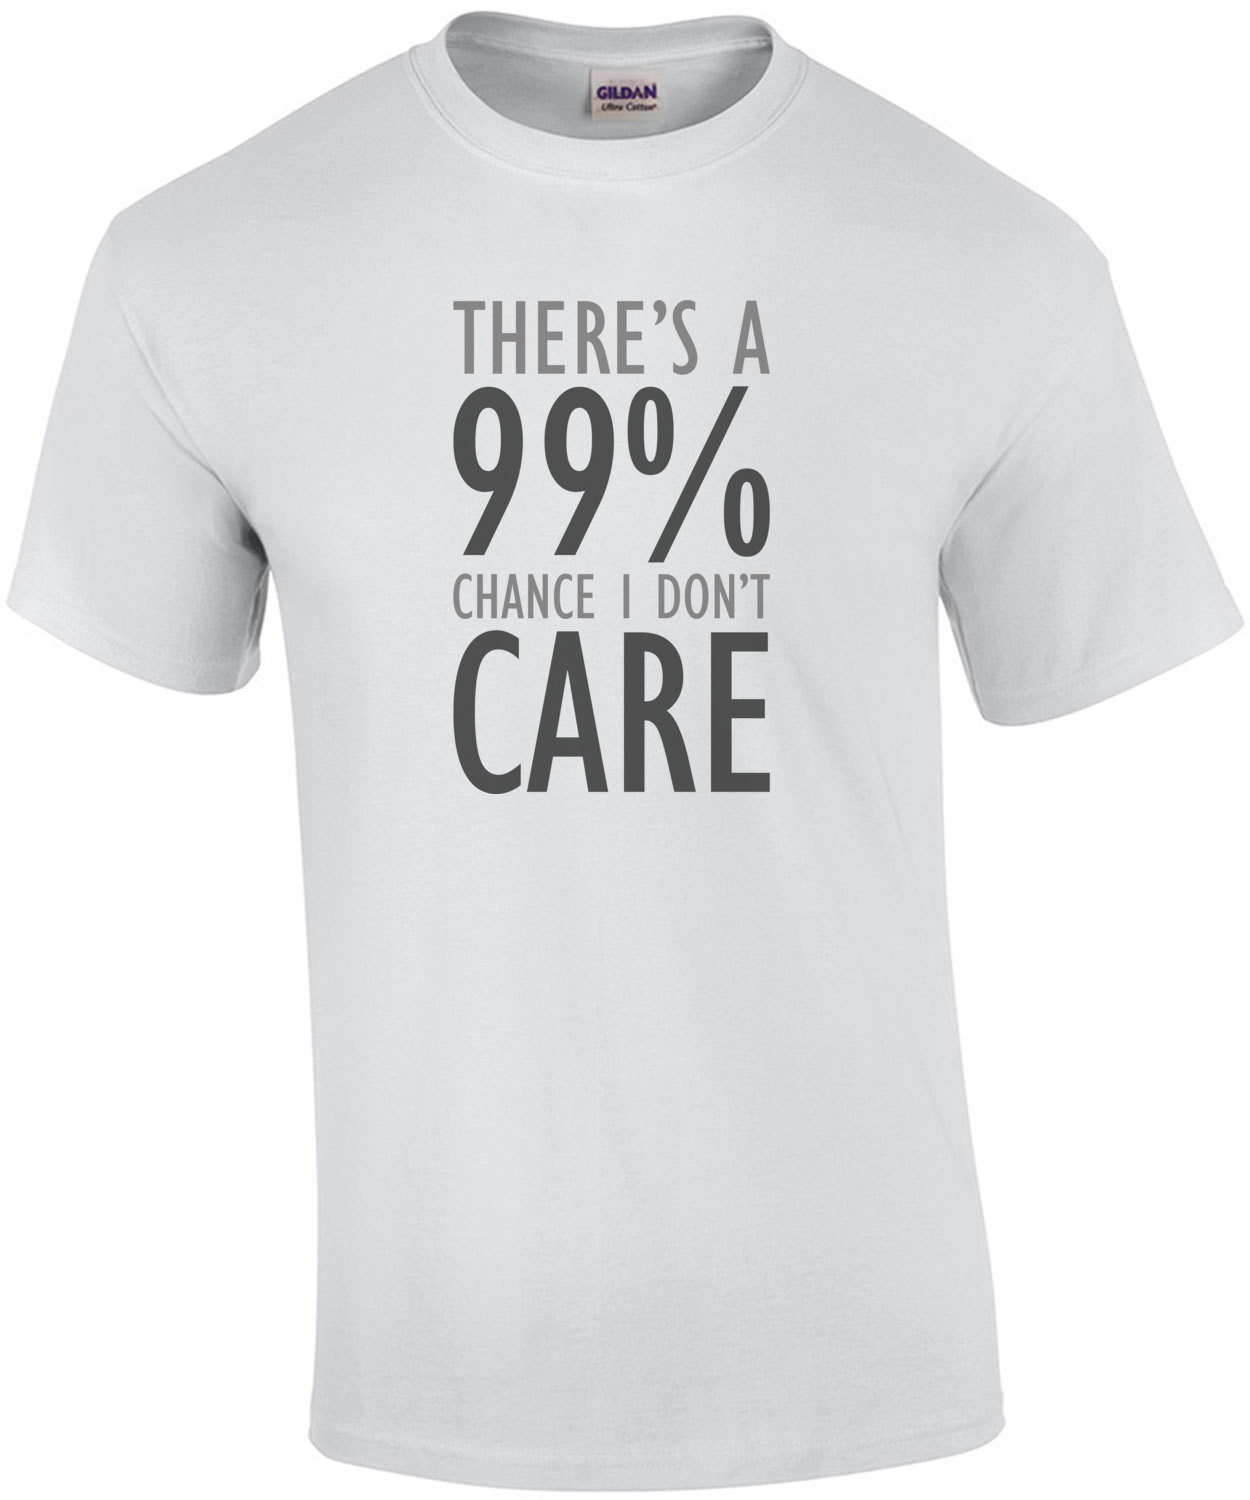 There's a 99% chance I don't care - sarcastic t-shirt